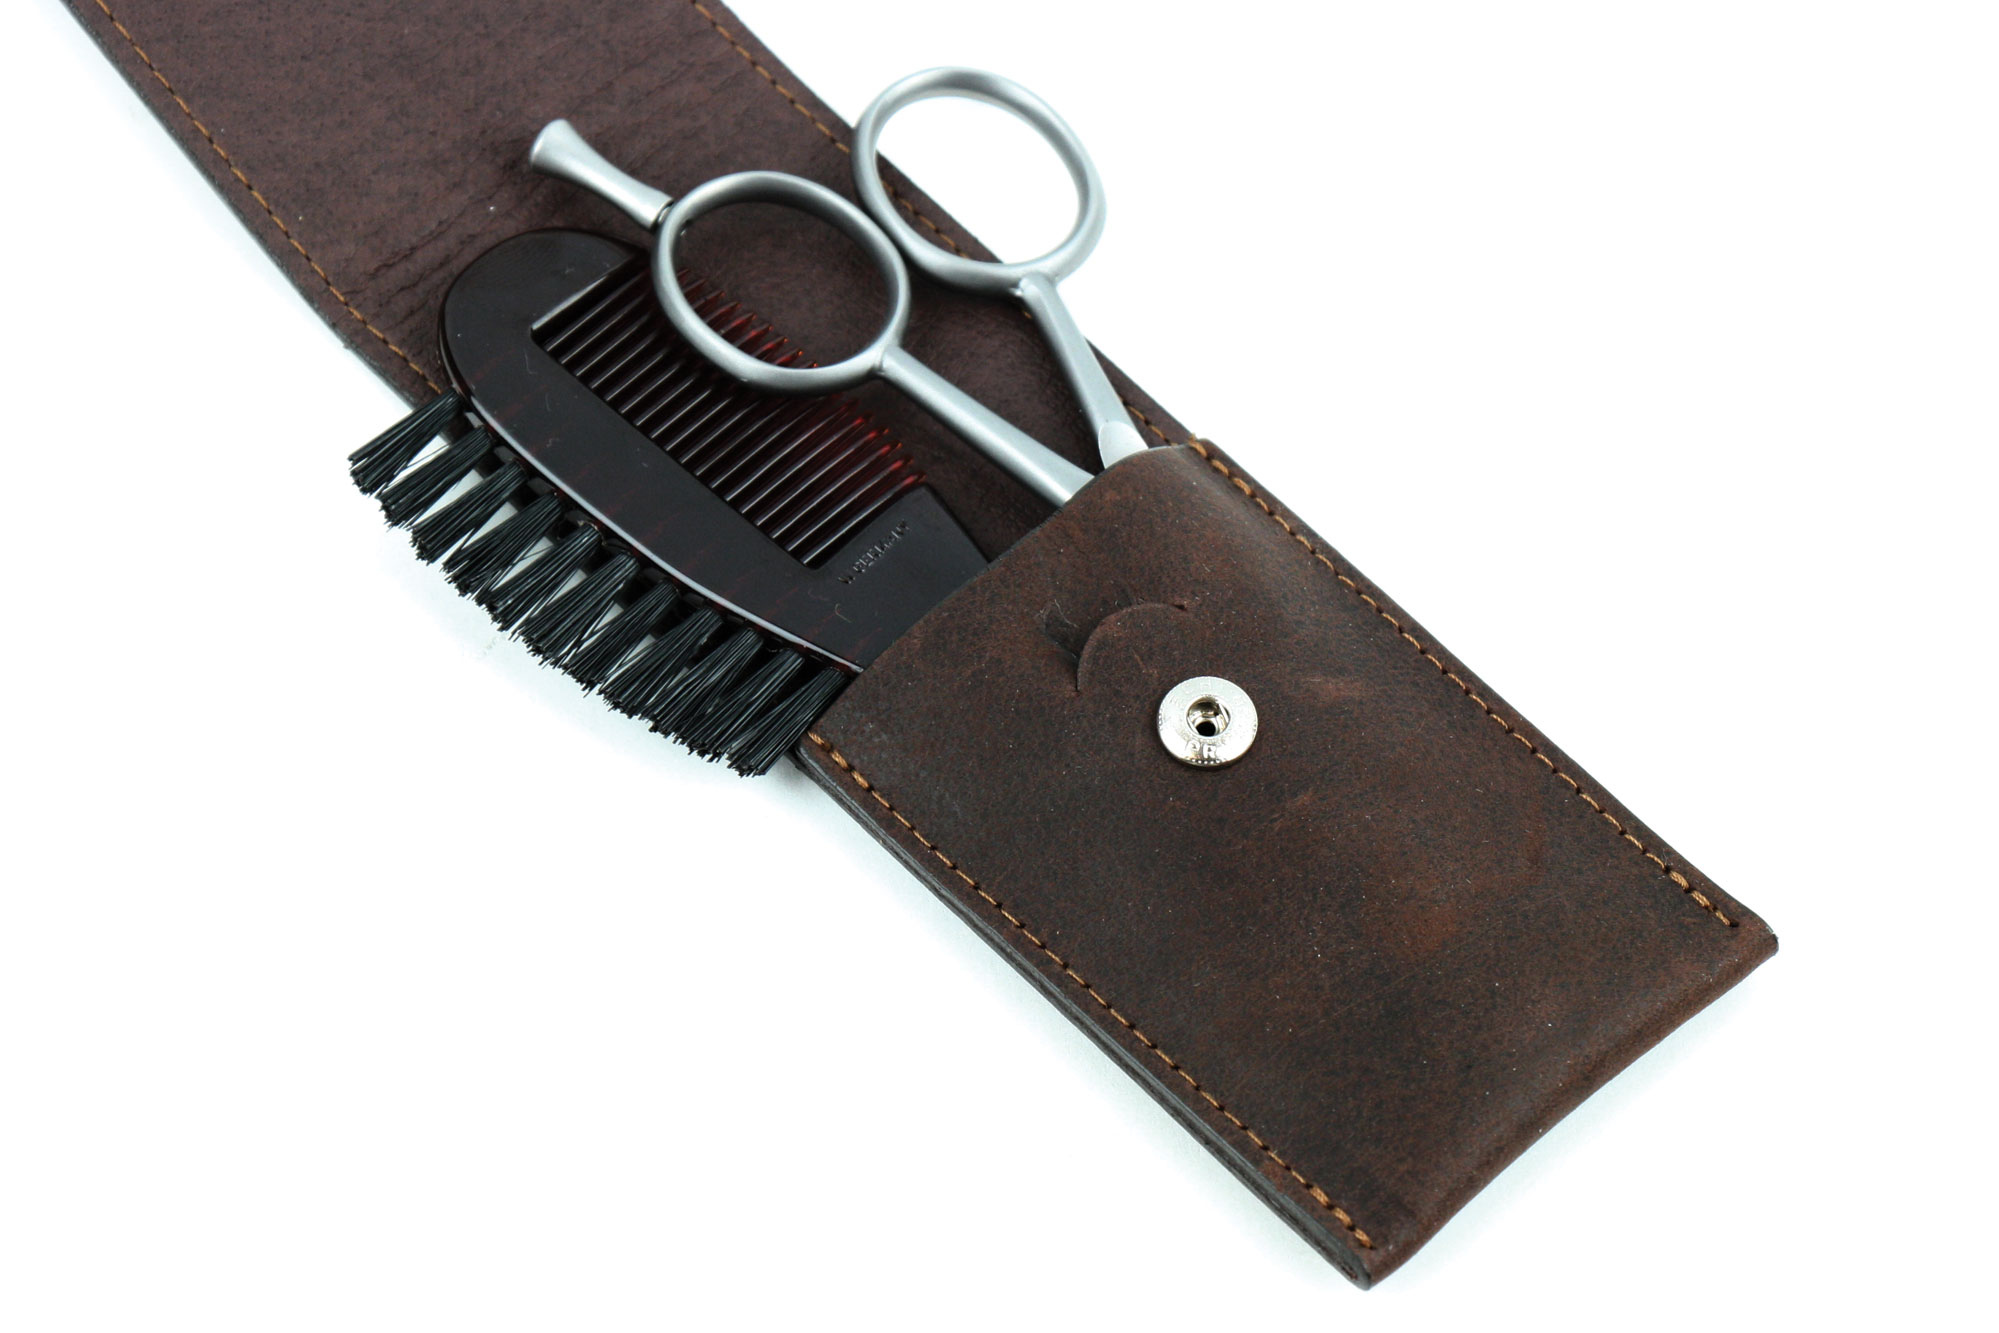 Dovo Moustache Amp Beard Grooming Set 3 Piece Cutlery And